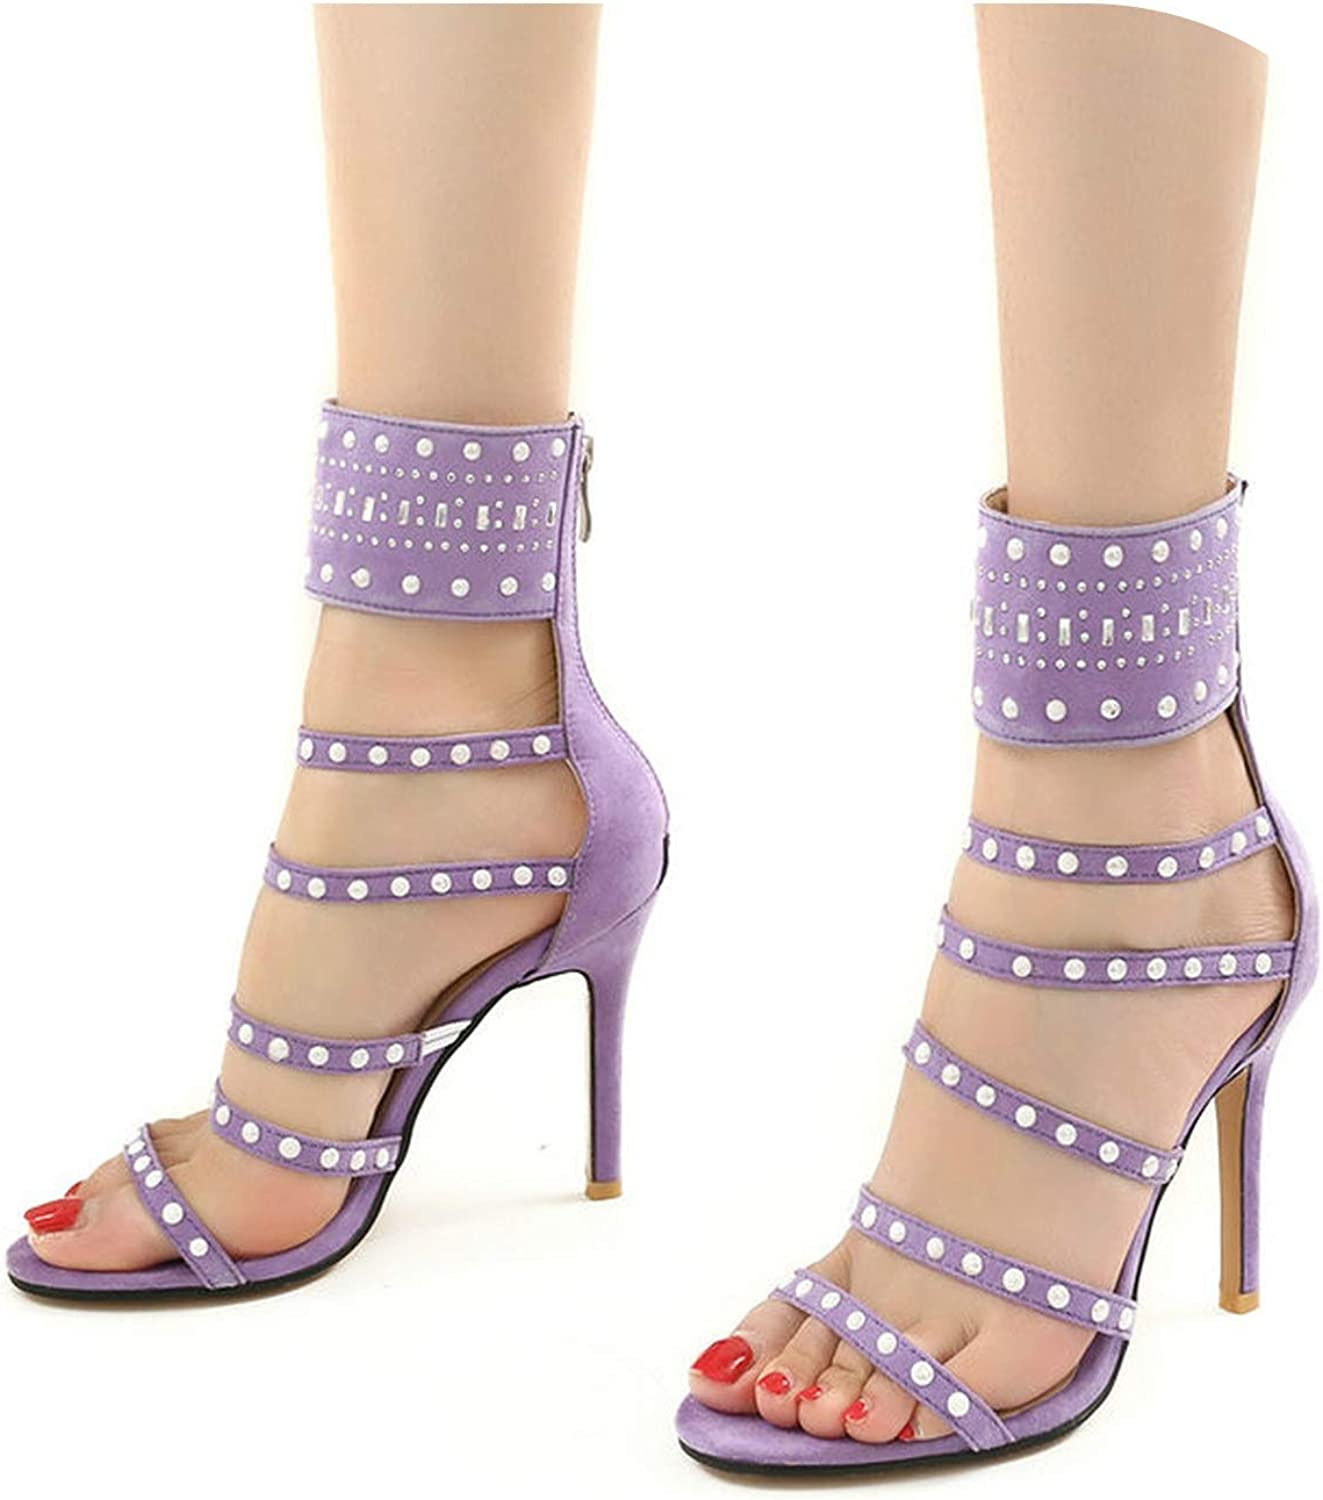 2019 Summer High Heels Women shoes Gladiator Sandals Fashion Crystal Super High Heel Zipper shoes Open Toe Party Ladies shoes